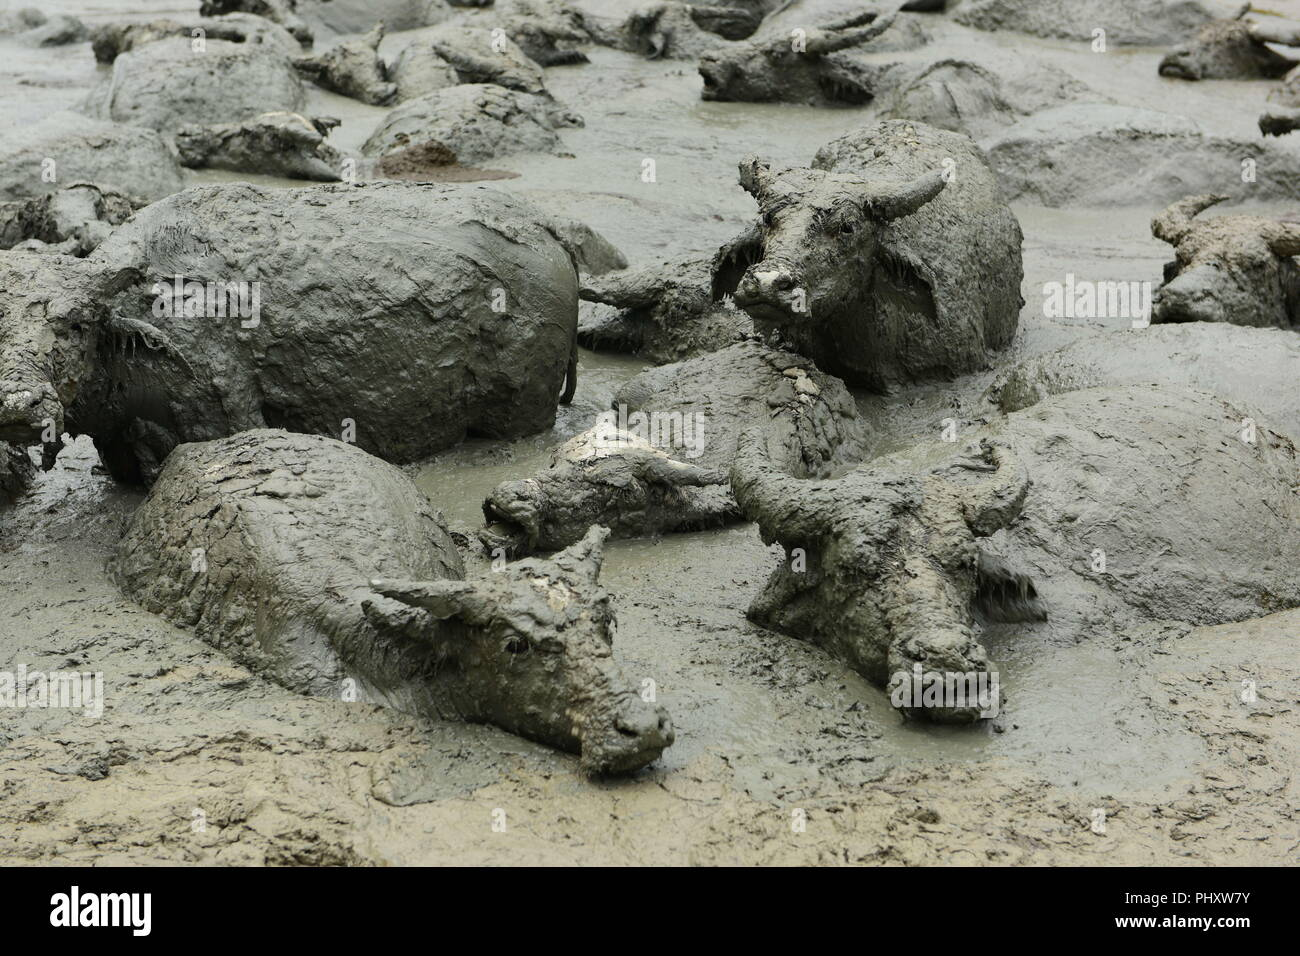 Enshi, China. 3rd Sep, 2018. Hundreds of buffaloes cool off by enjoying a mud-bath in Enshi, central China's Hubei Province. Credit: SIPA Asia/ZUMA Wire/Alamy Live News - Stock Image